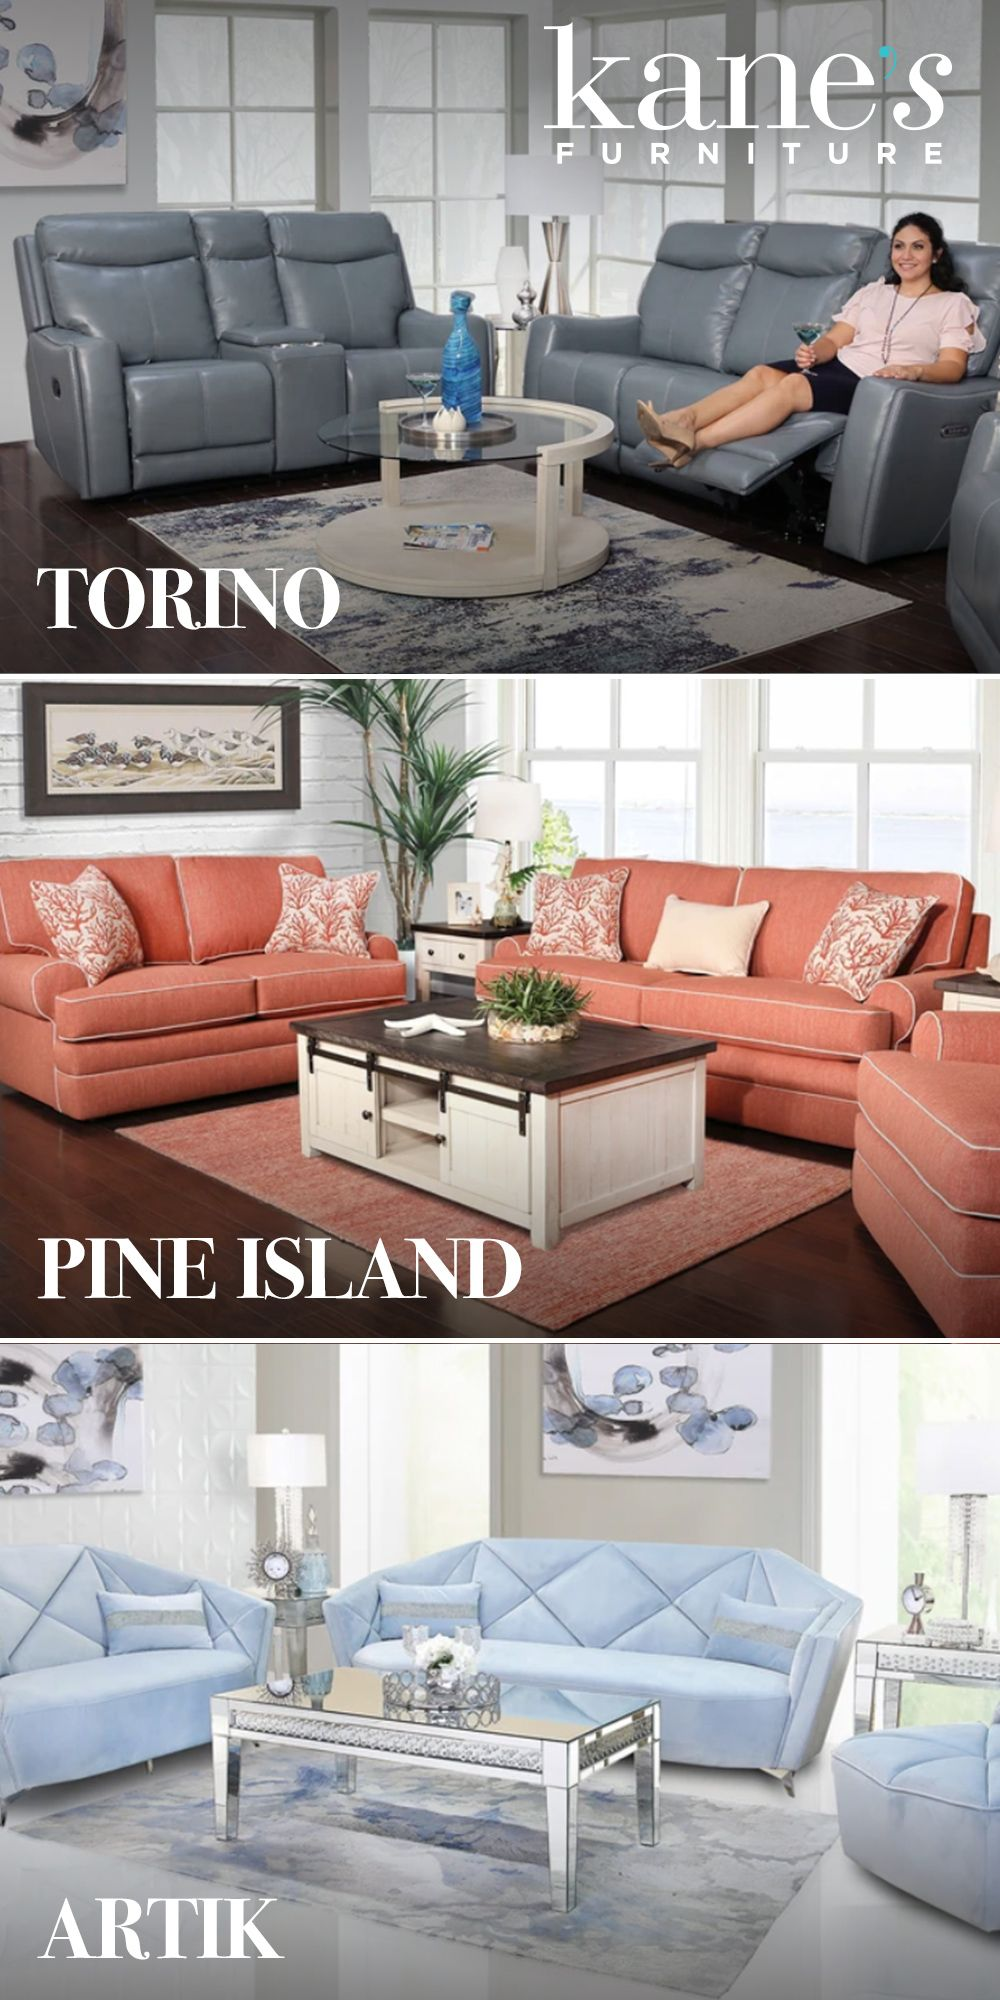 Pin By Kane S Furniture On Sofas Chic Living Room Decor Living Room Sets Living Room Collections